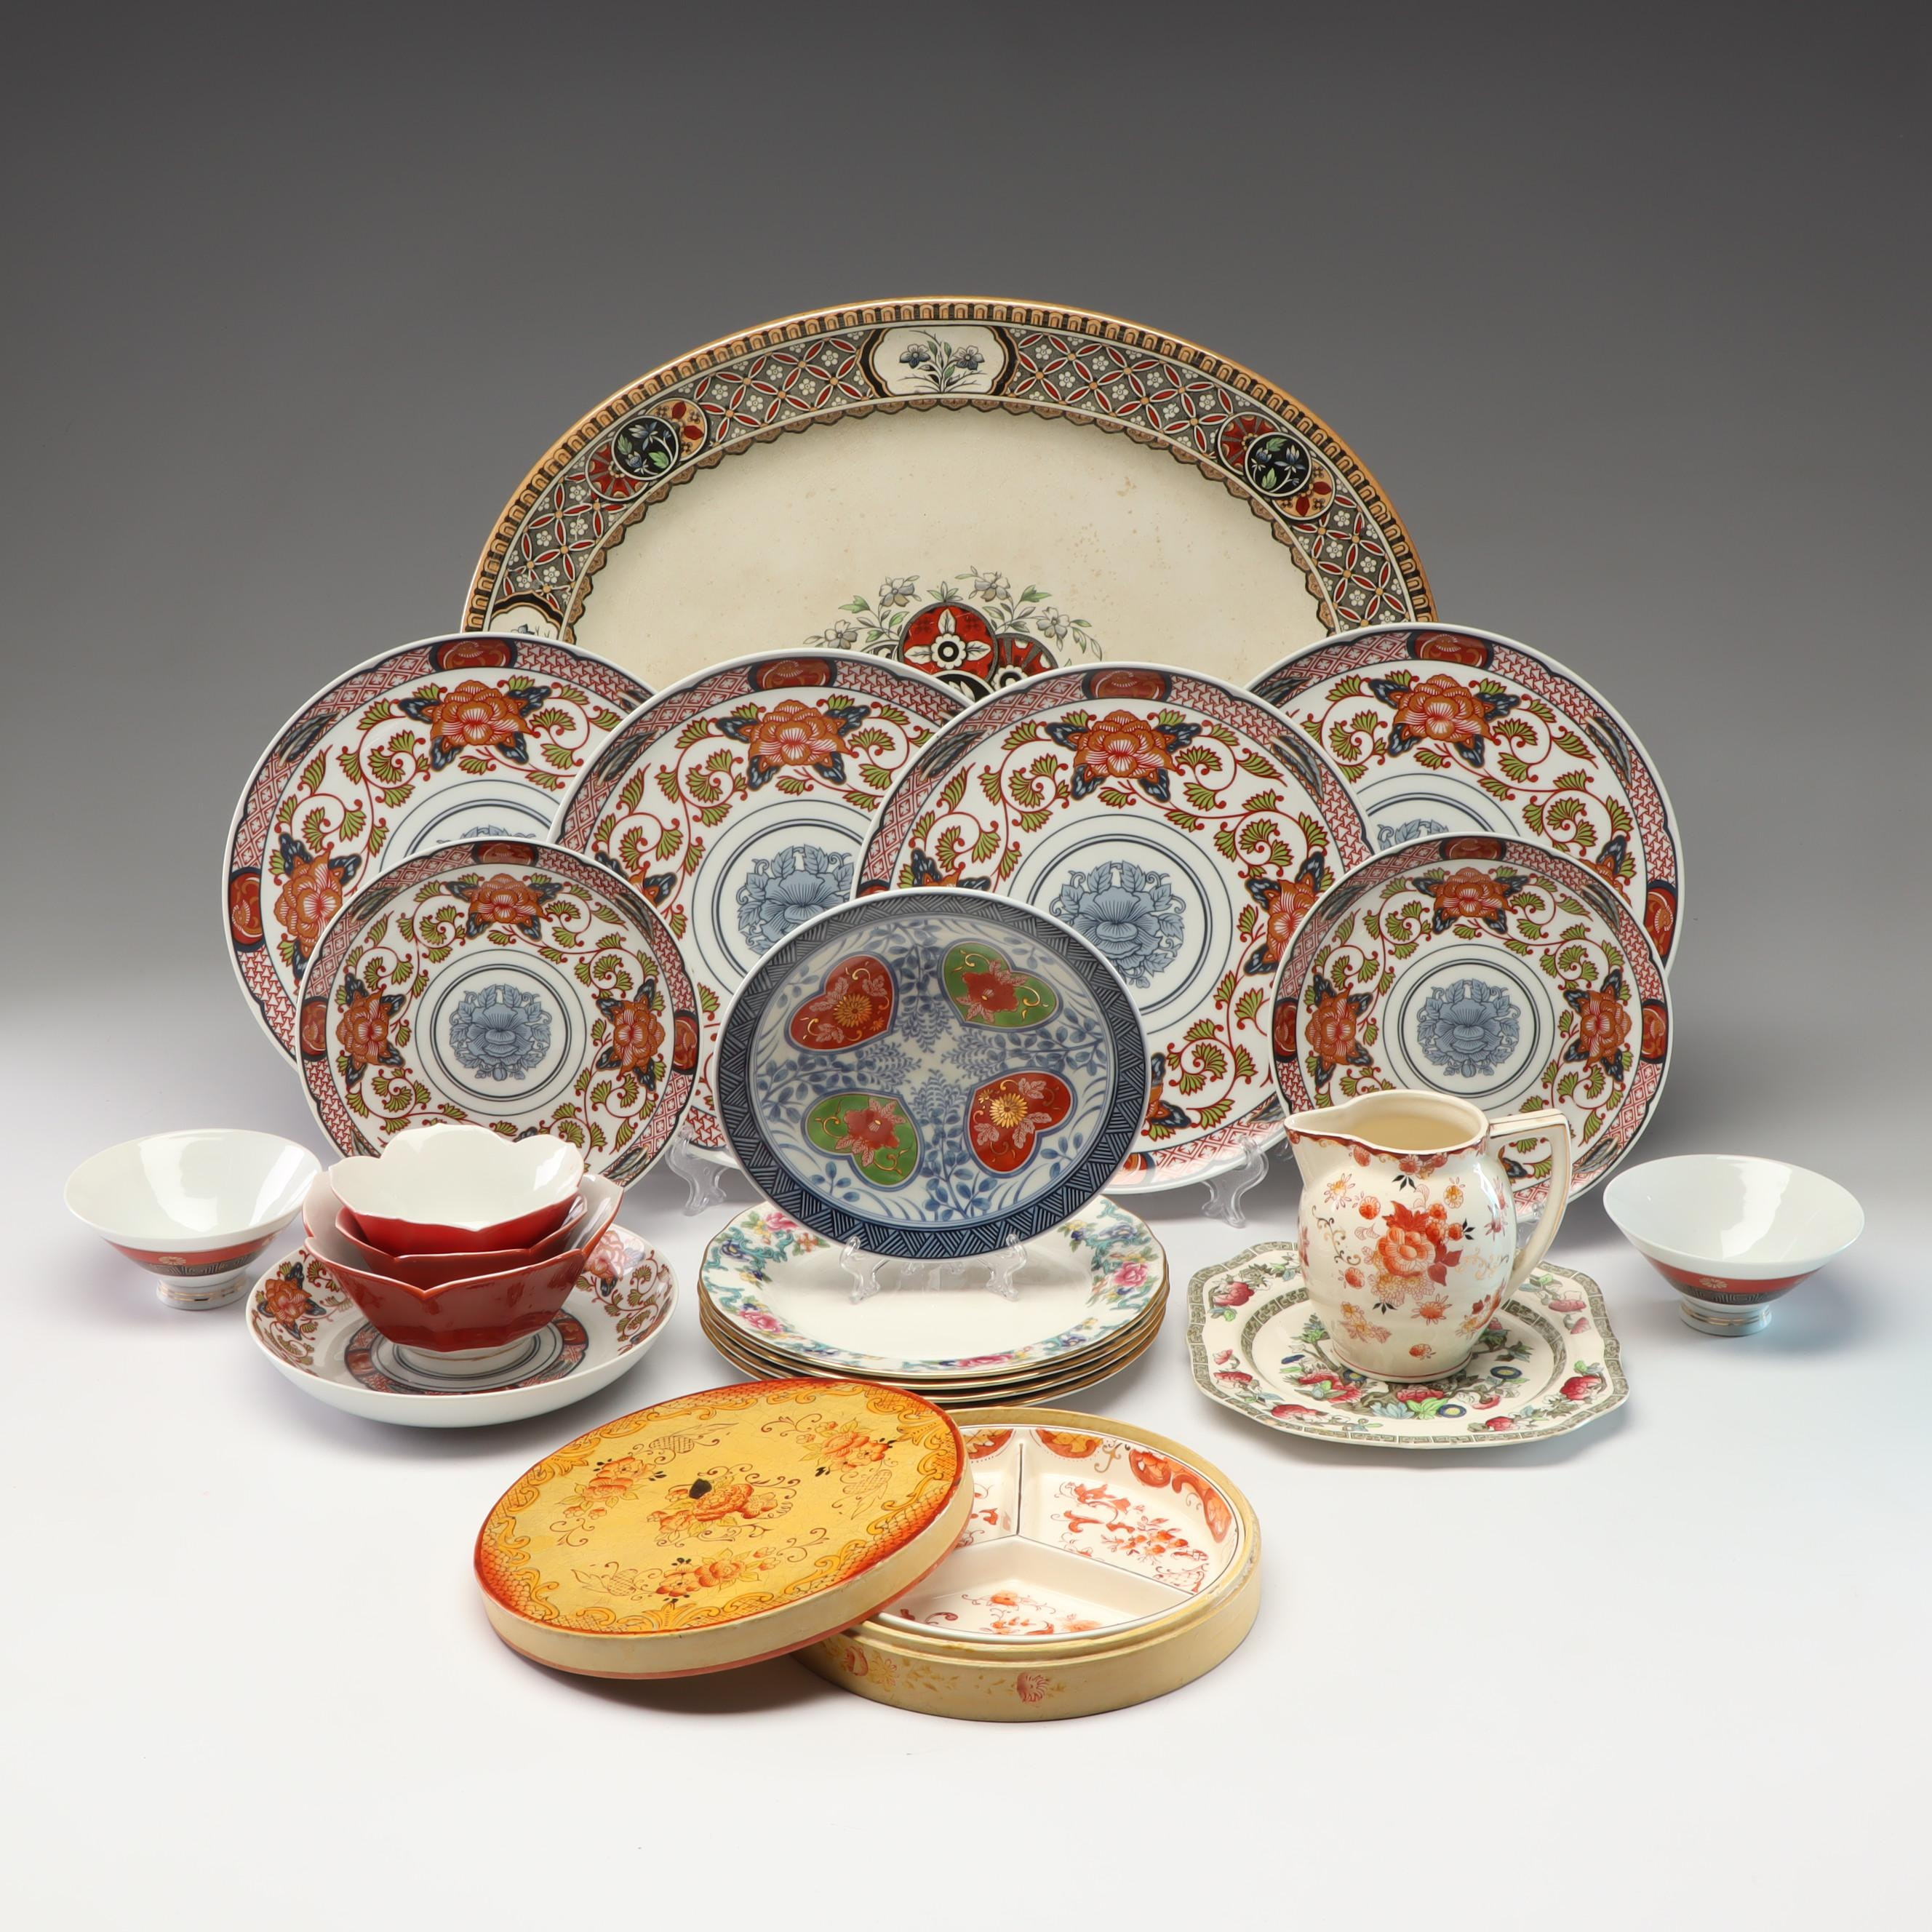 Georges Briard, Royal Doulton, Johnson Bros and Other Ceramic Tableware